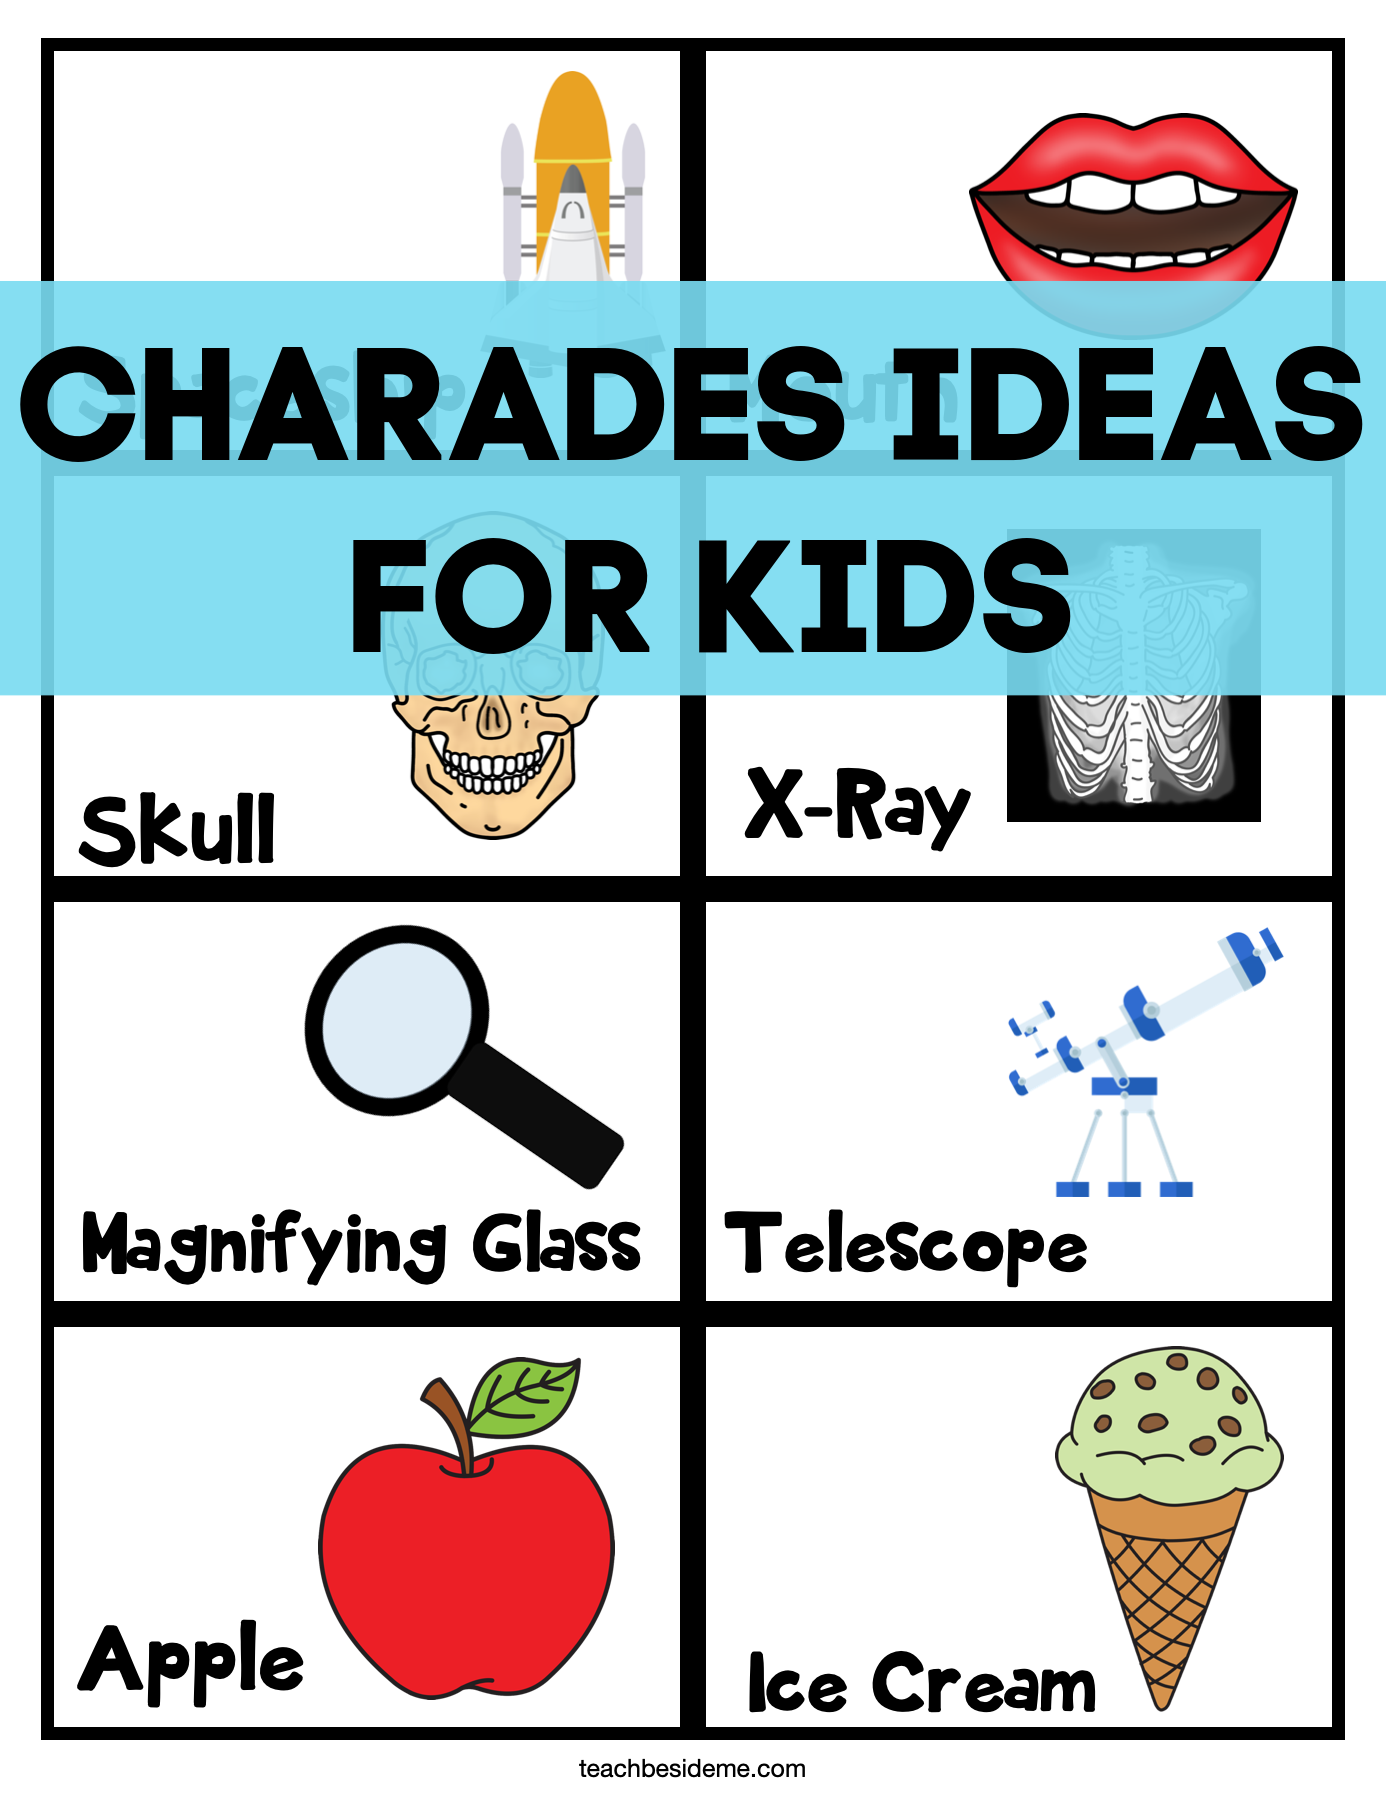 charades printable cards for kids